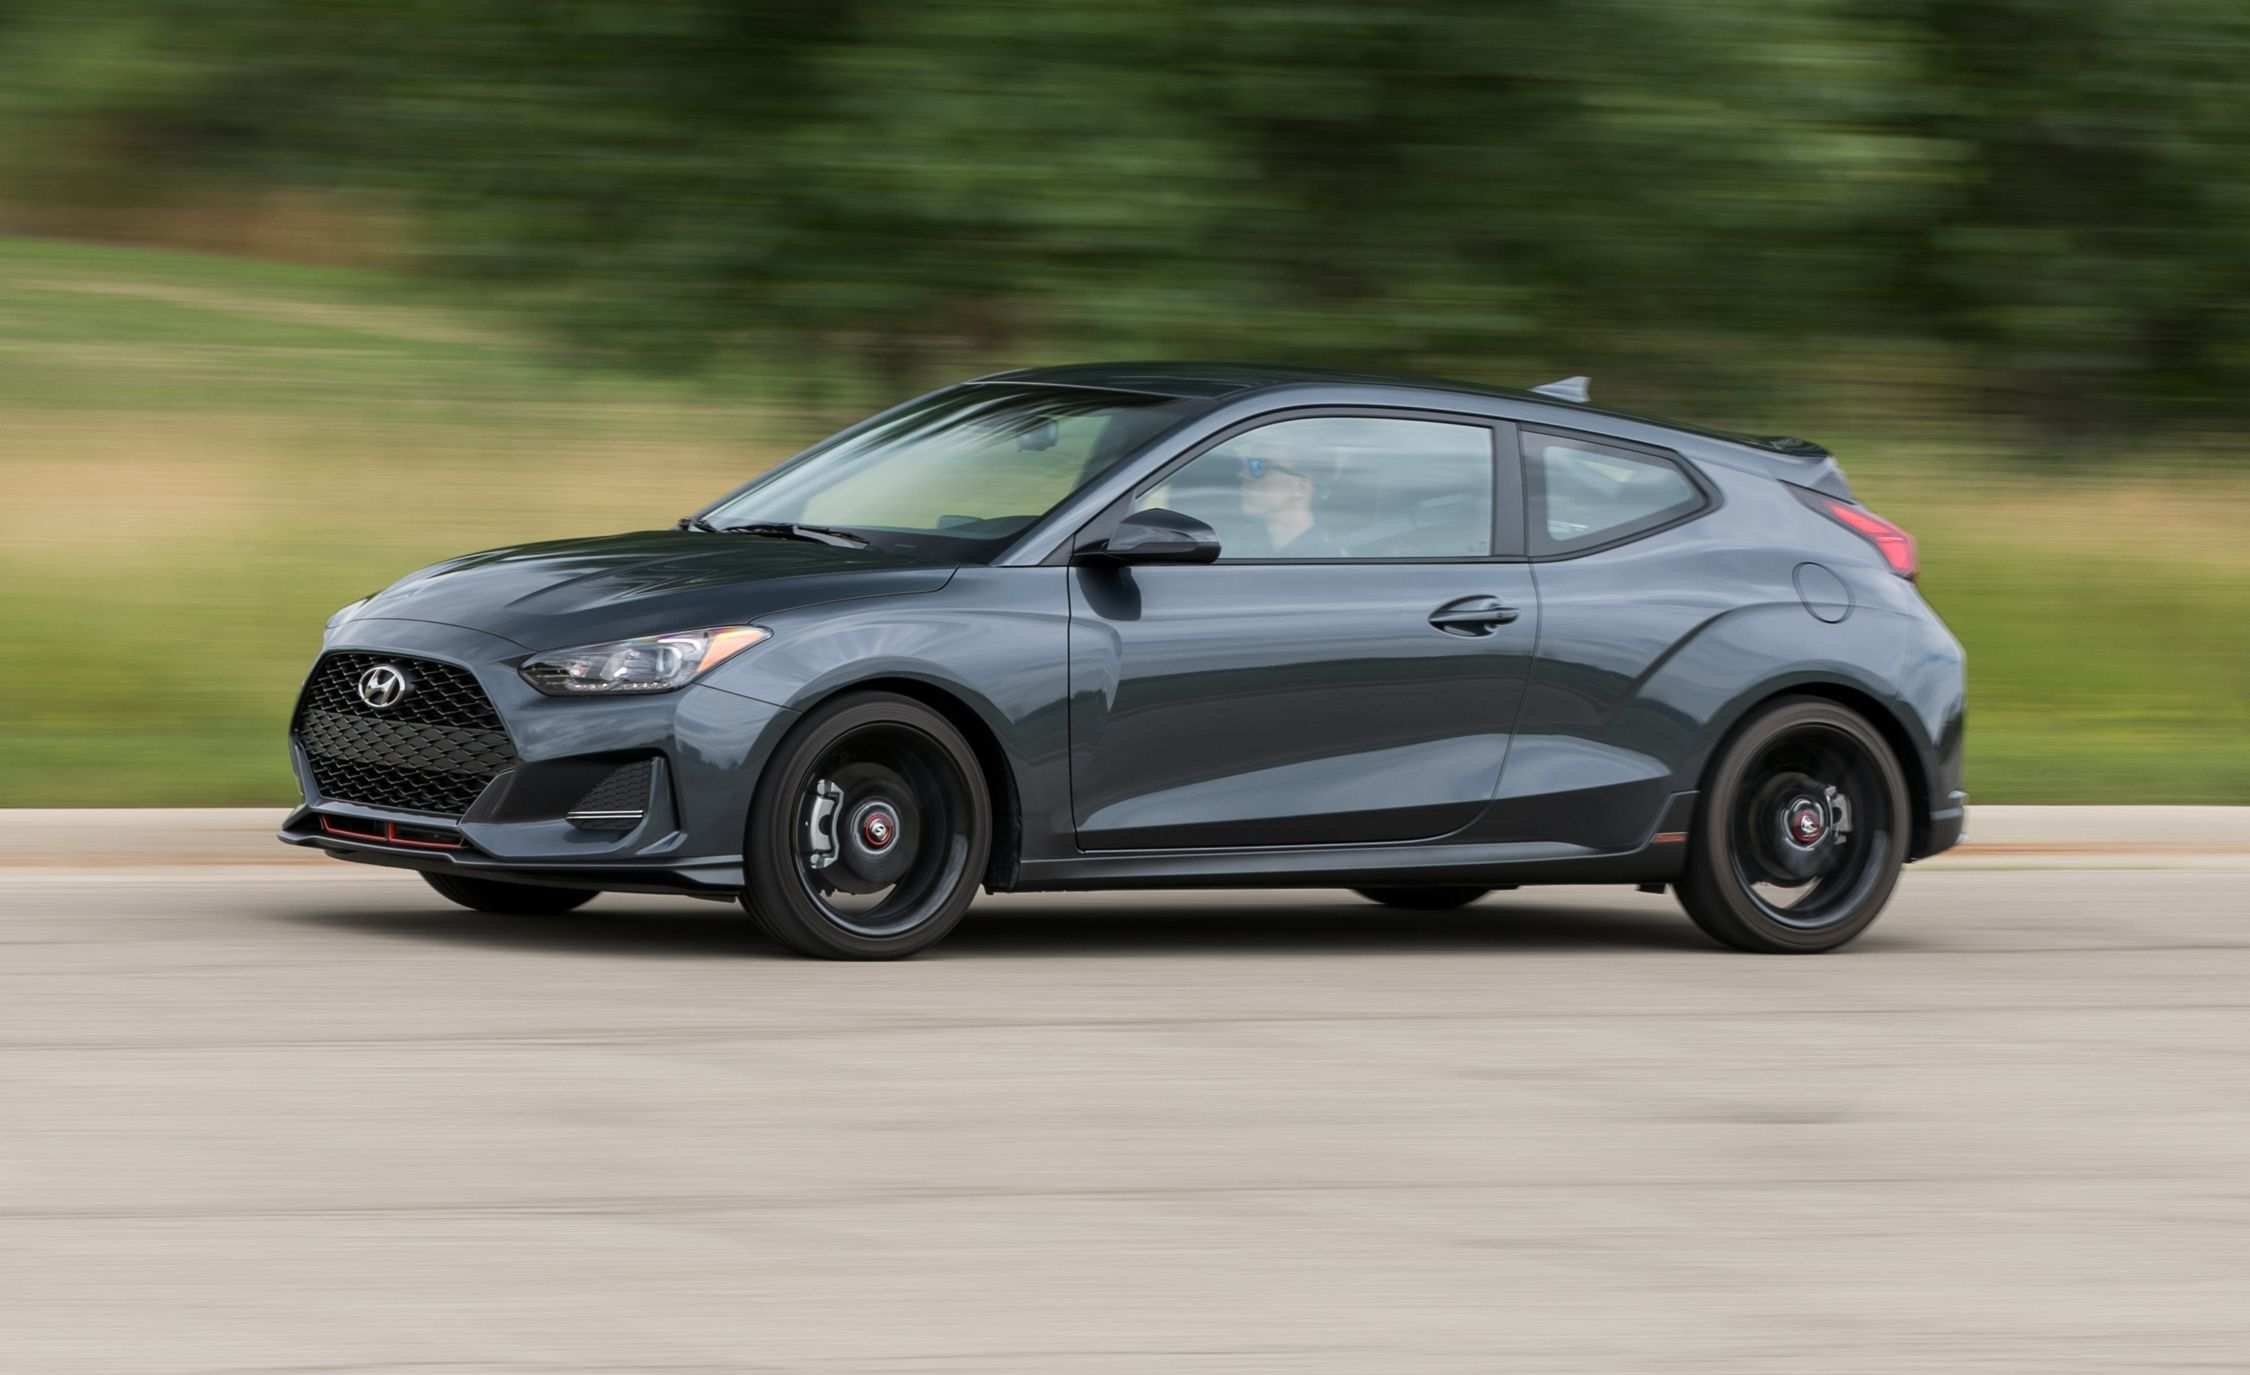 43 Gallery of 2019 Hyundai Veloster Review New Review by 2019 Hyundai Veloster Review